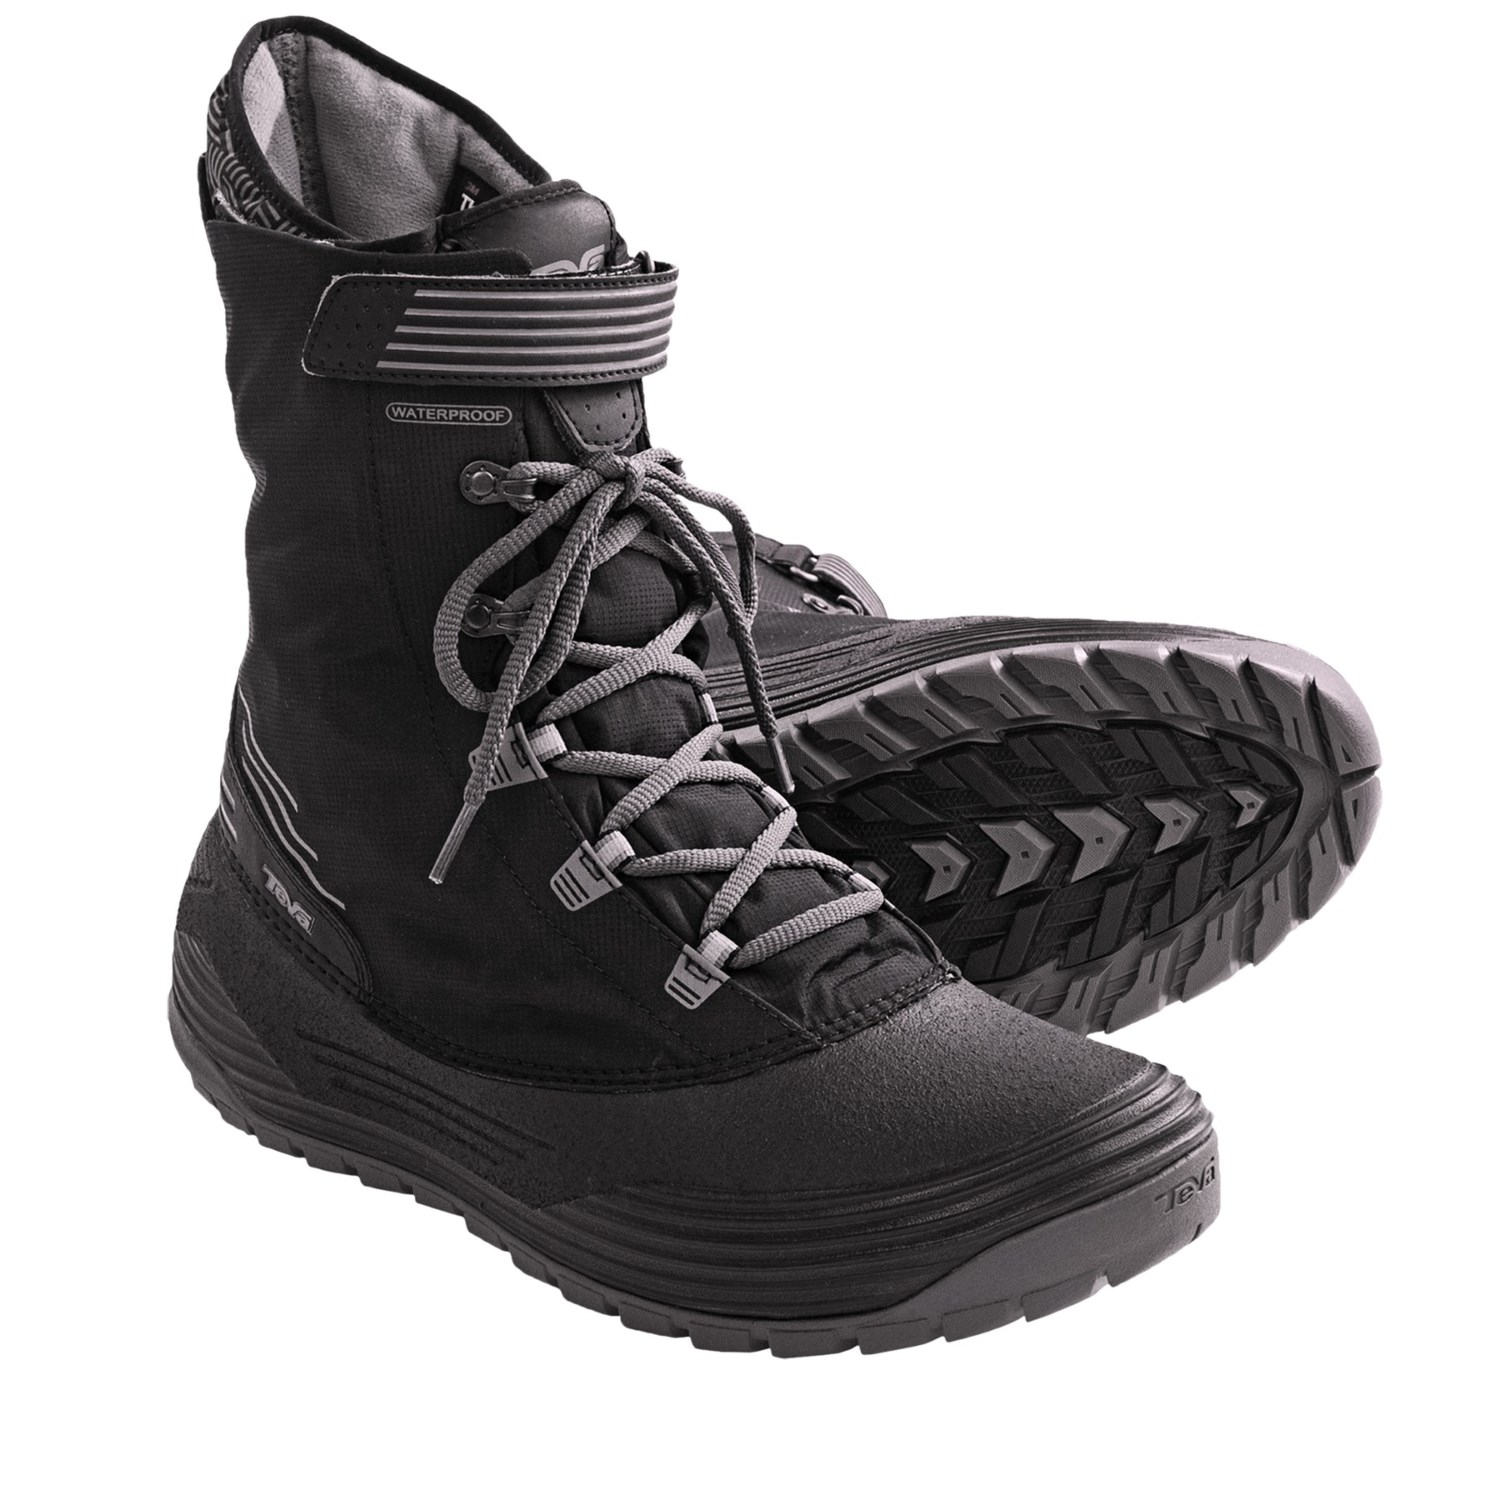 Mens Wide Winter Boots - Boot Yc